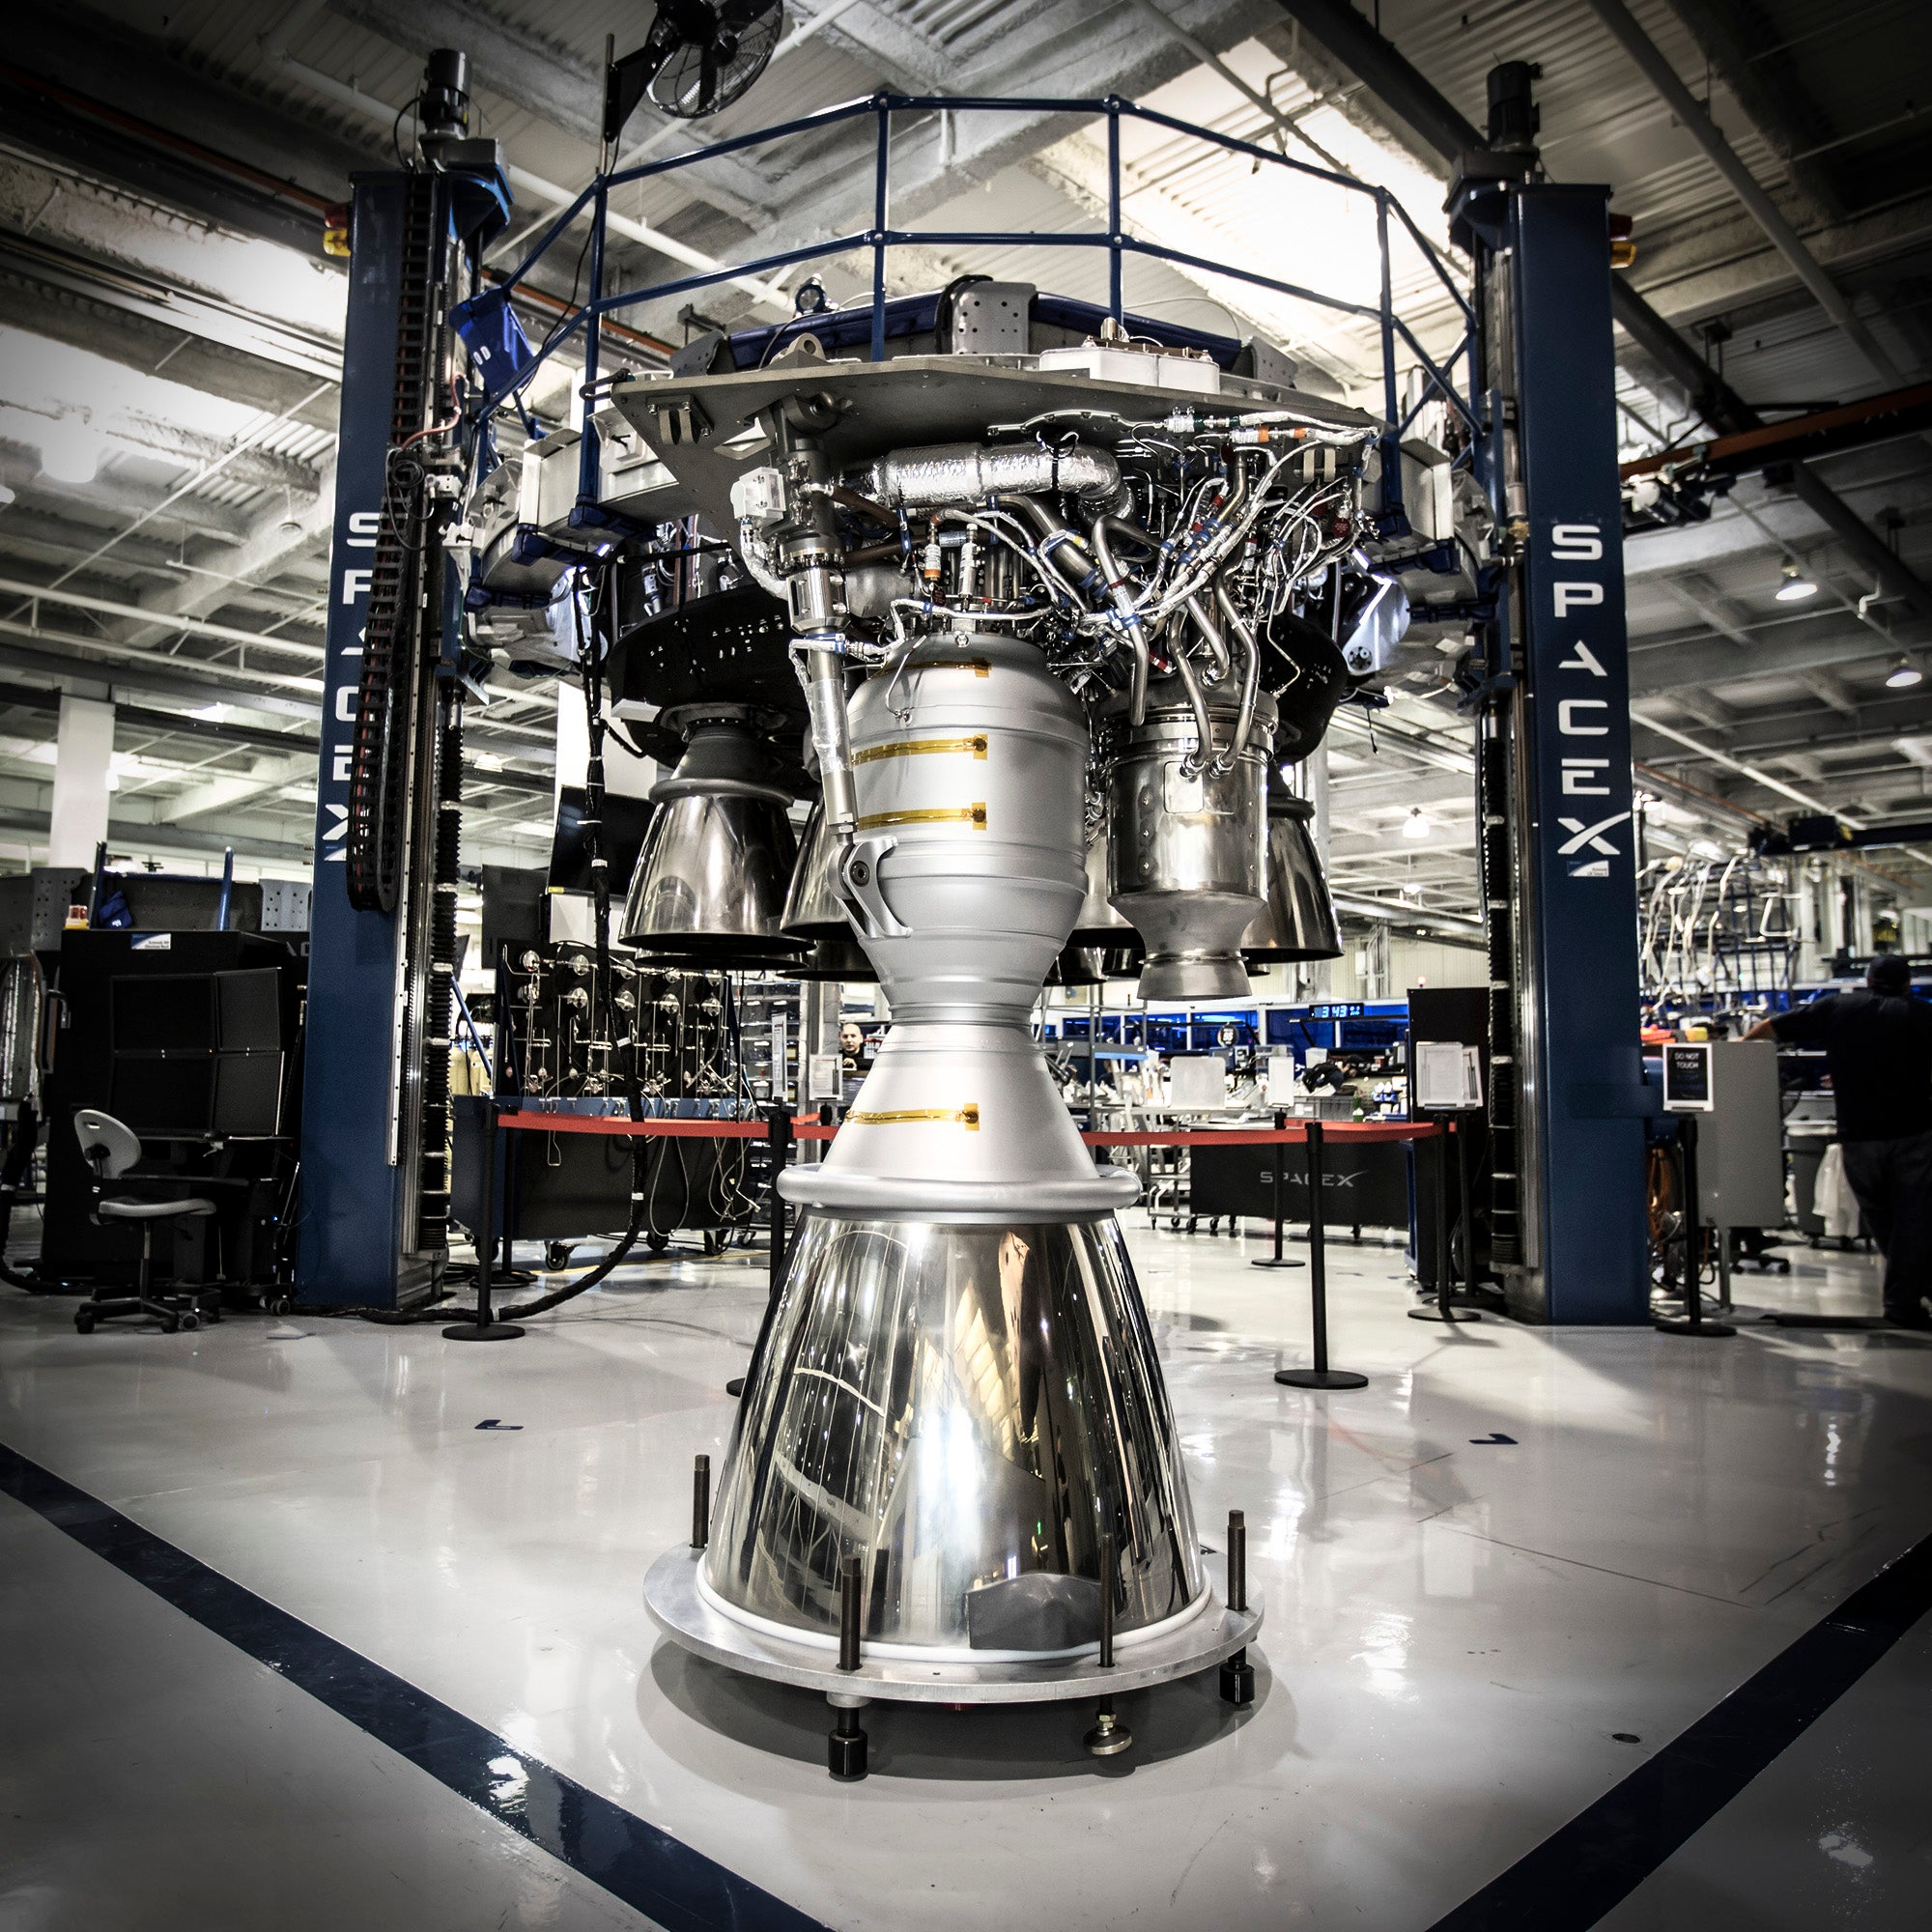 Rocket problems may delay SpaceX's first crewed launches